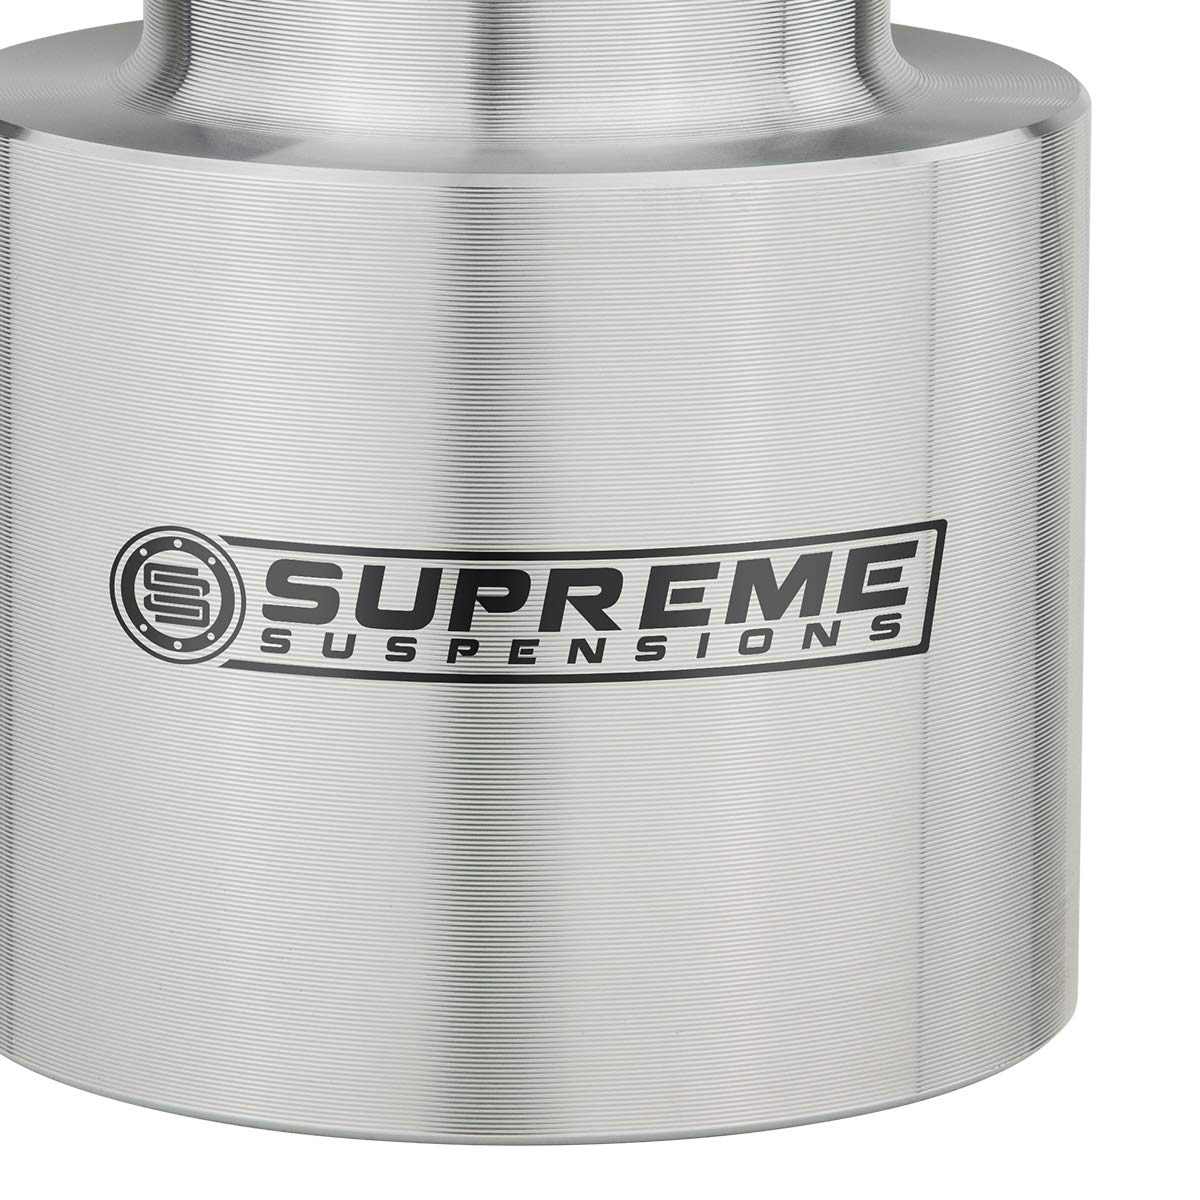 Supreme Suspensions Suburban 1500 2 Rear Lift Aircraft Billet Coil Spring Spacers 2WD 4WD Black Tahoe Rear Leveling Kit for Chevy Avalanche 1500